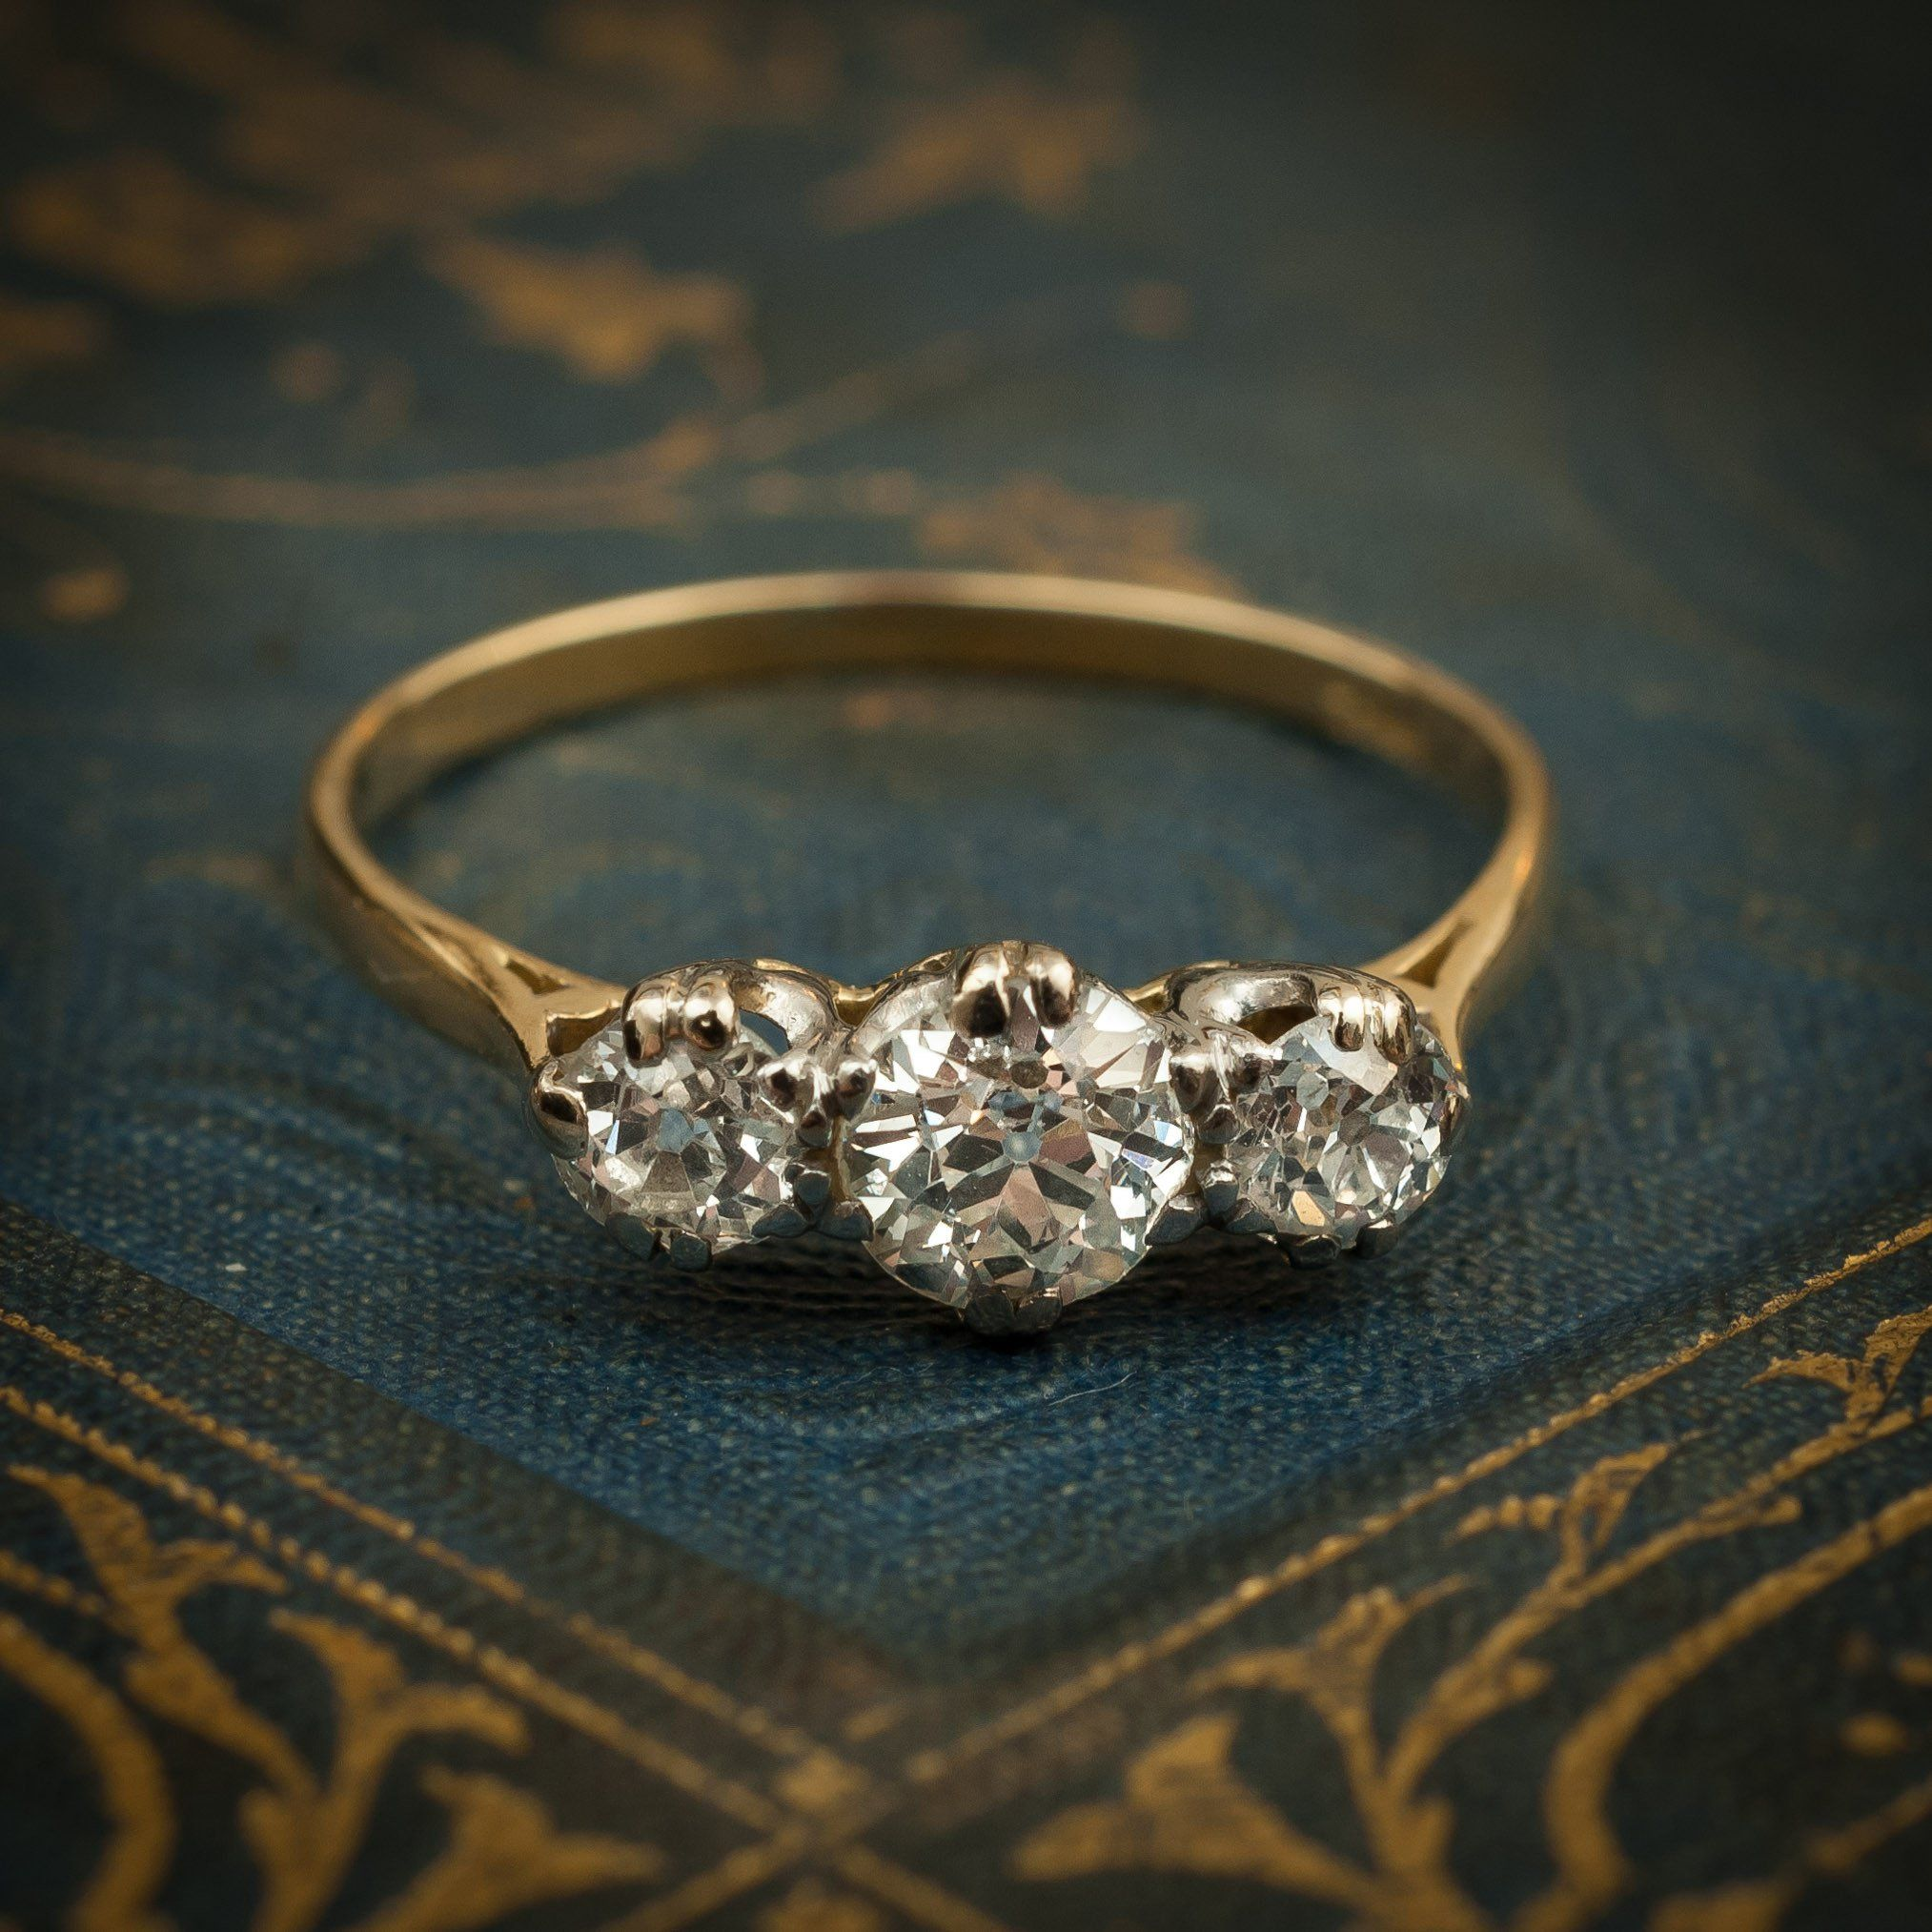 jewelry rings victorian shop engagement erstwhile history stories blogs greek of